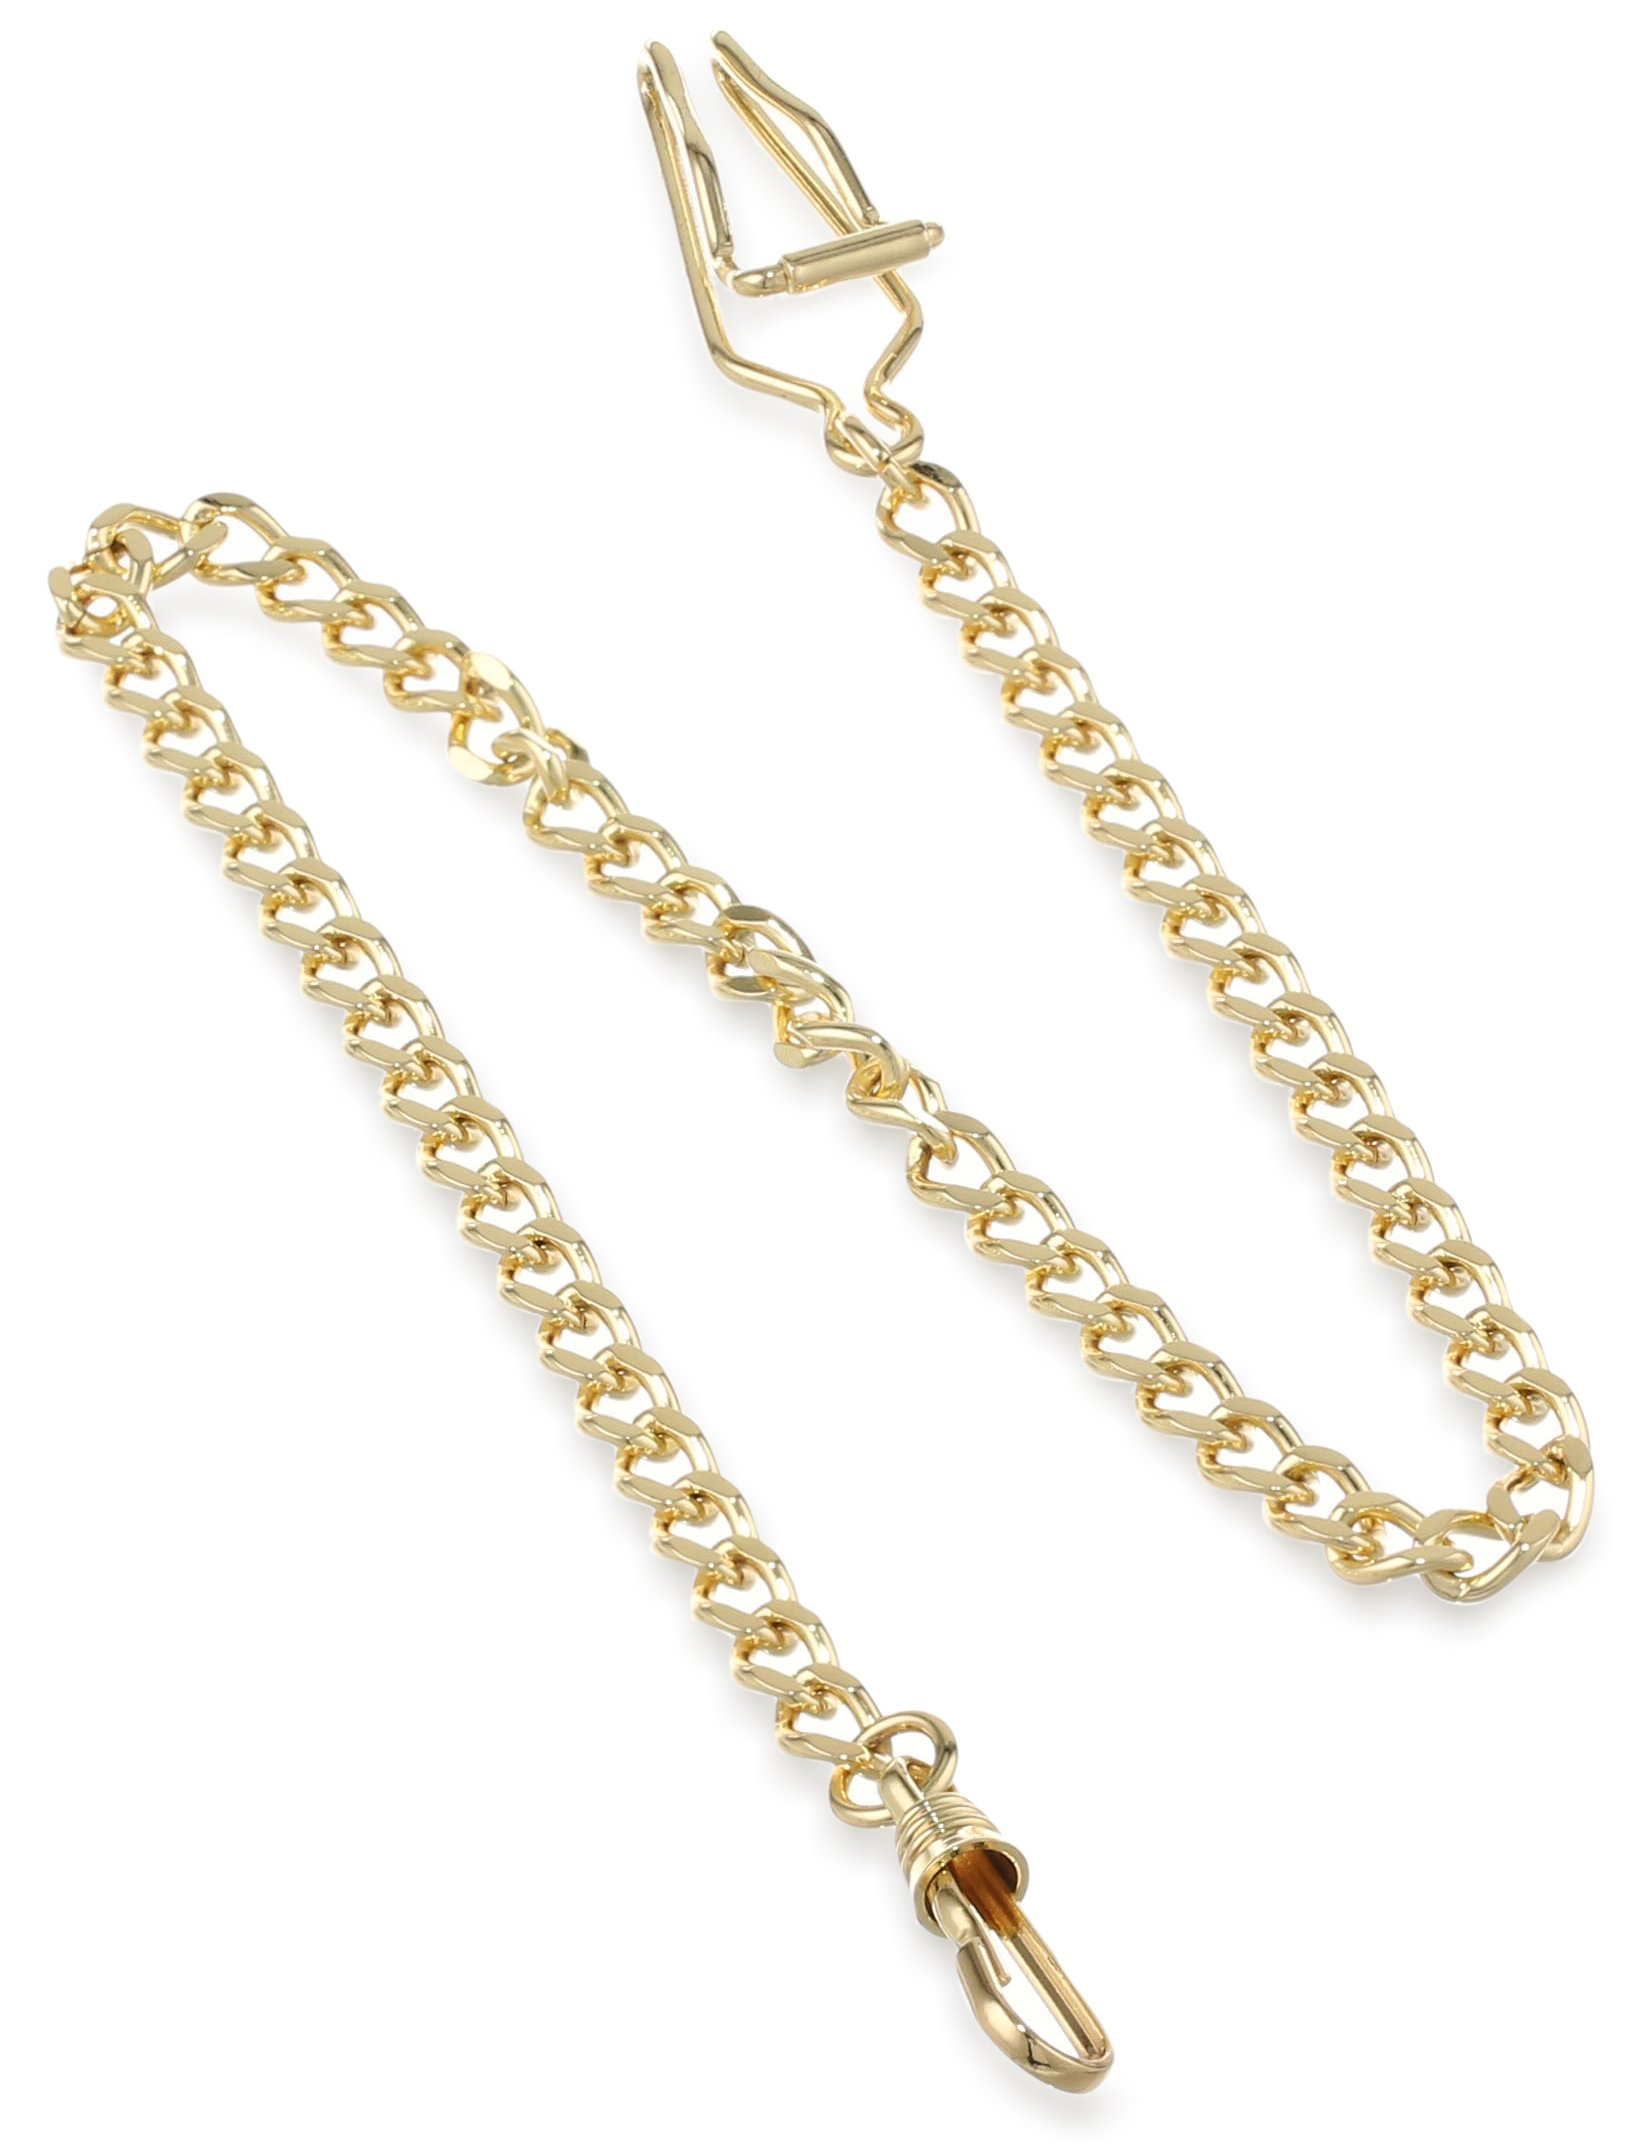 Charles-Hubert, Paris 3547-G Gold-Plated Pocket Watch Chain